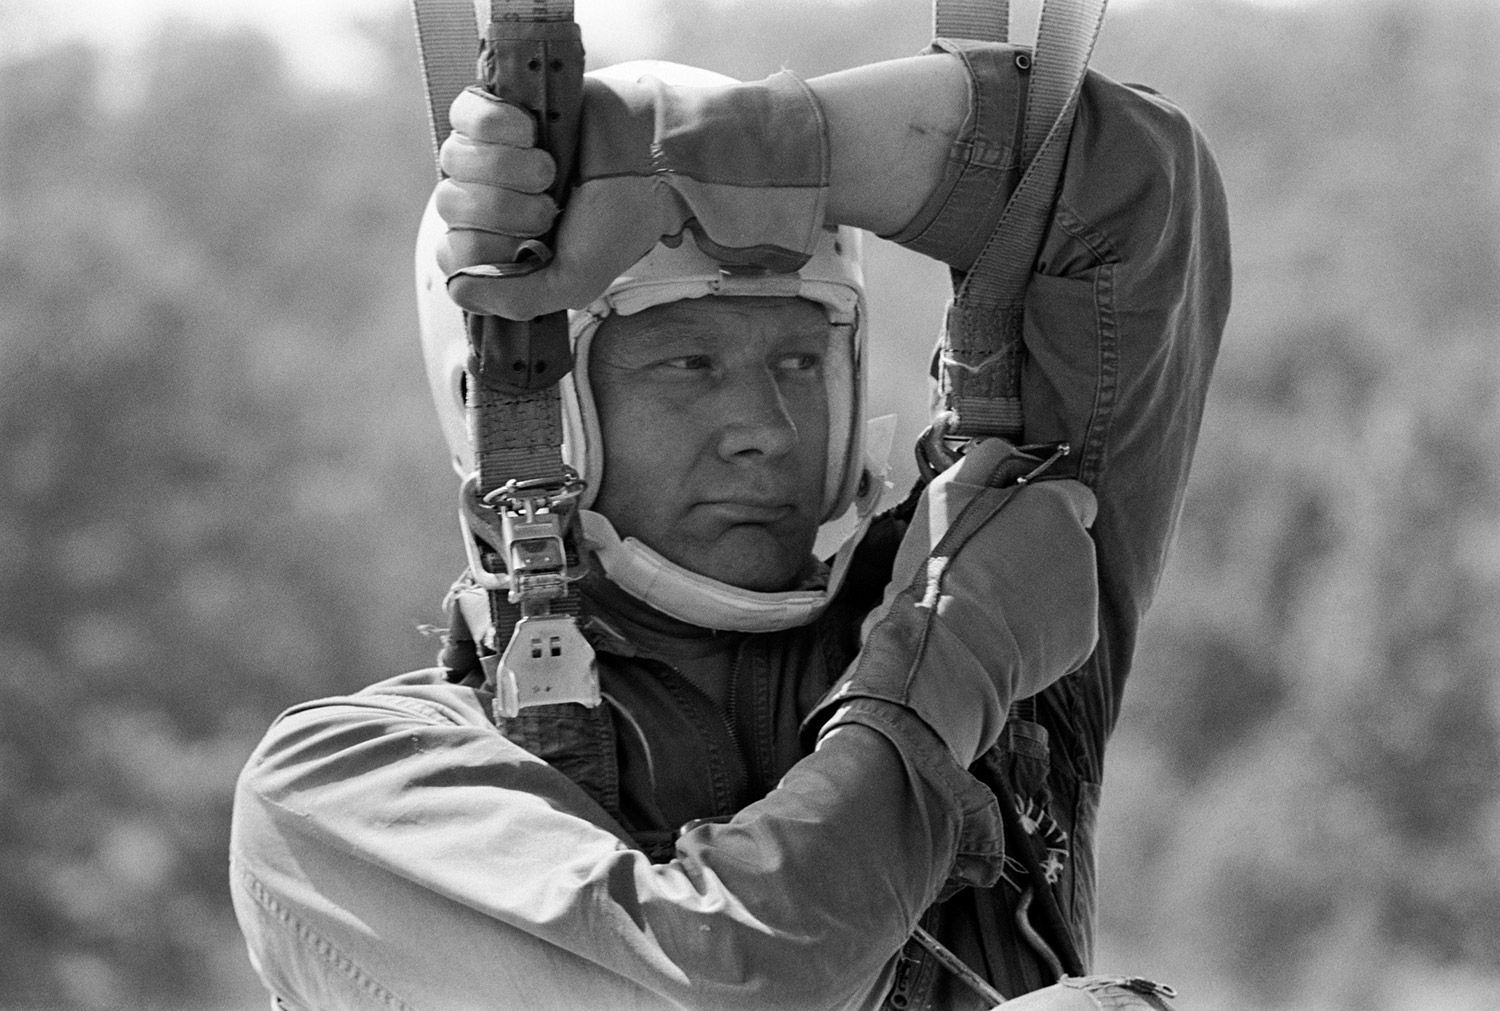 Hanging from a parachute harness, Buzz Aldrin undergoes aircraft ejection training at Perrin Air Force Base near Sherman, Texas during May of 1968. Credit: NASA via Retro Space Images